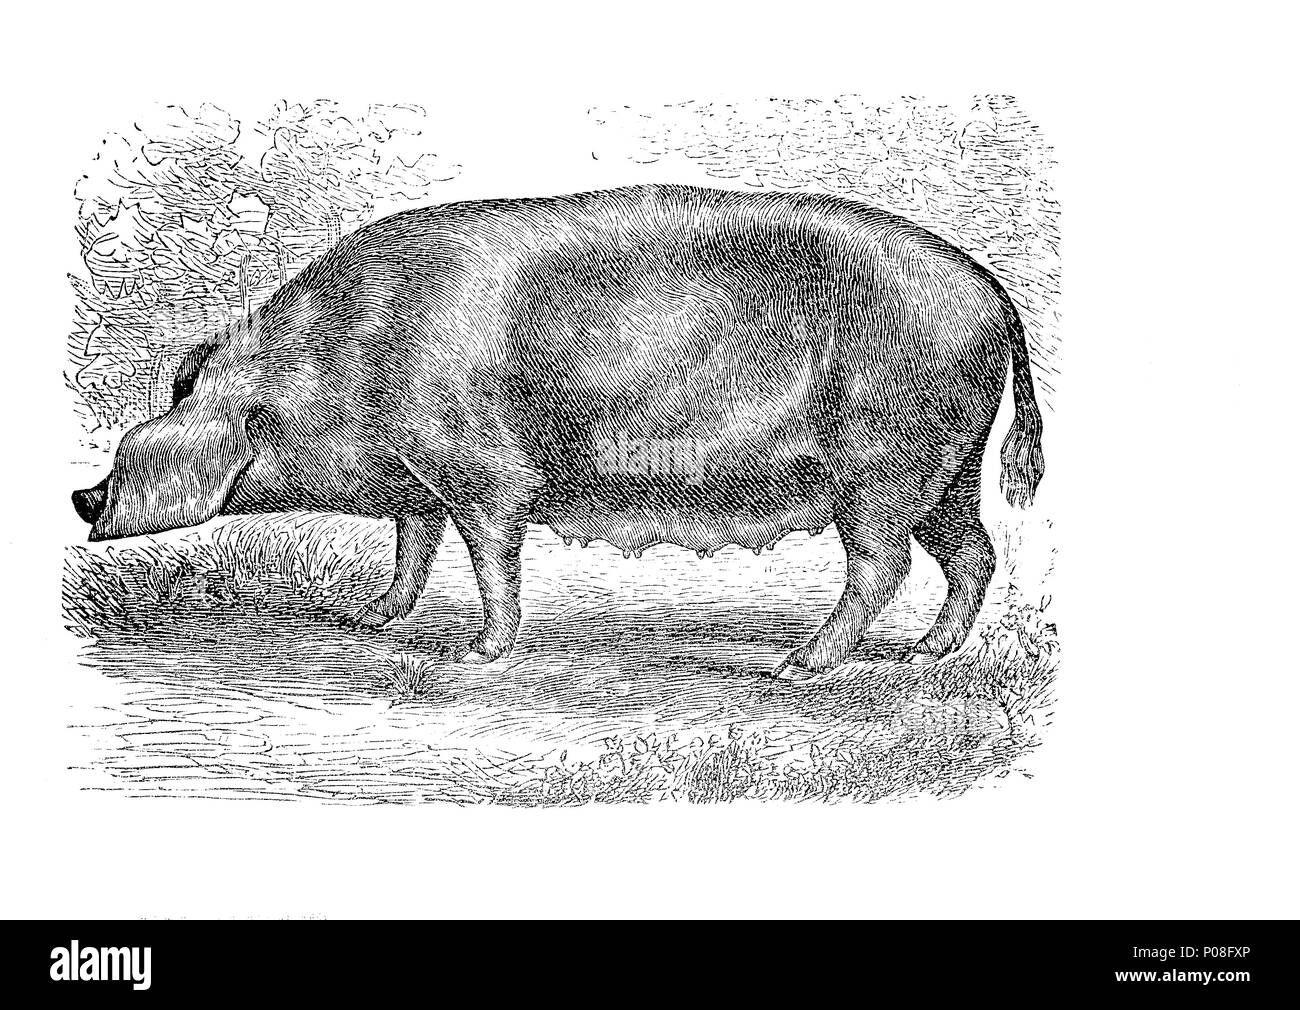 Marschschwein, Bentheim Black Pied, also known as Schwarz-Wesses or Buntes Bentheimer Schwein, is a rare breed of domestic pig in Germany., digital improved reproduction of an original print from the year 1881 - Stock Image